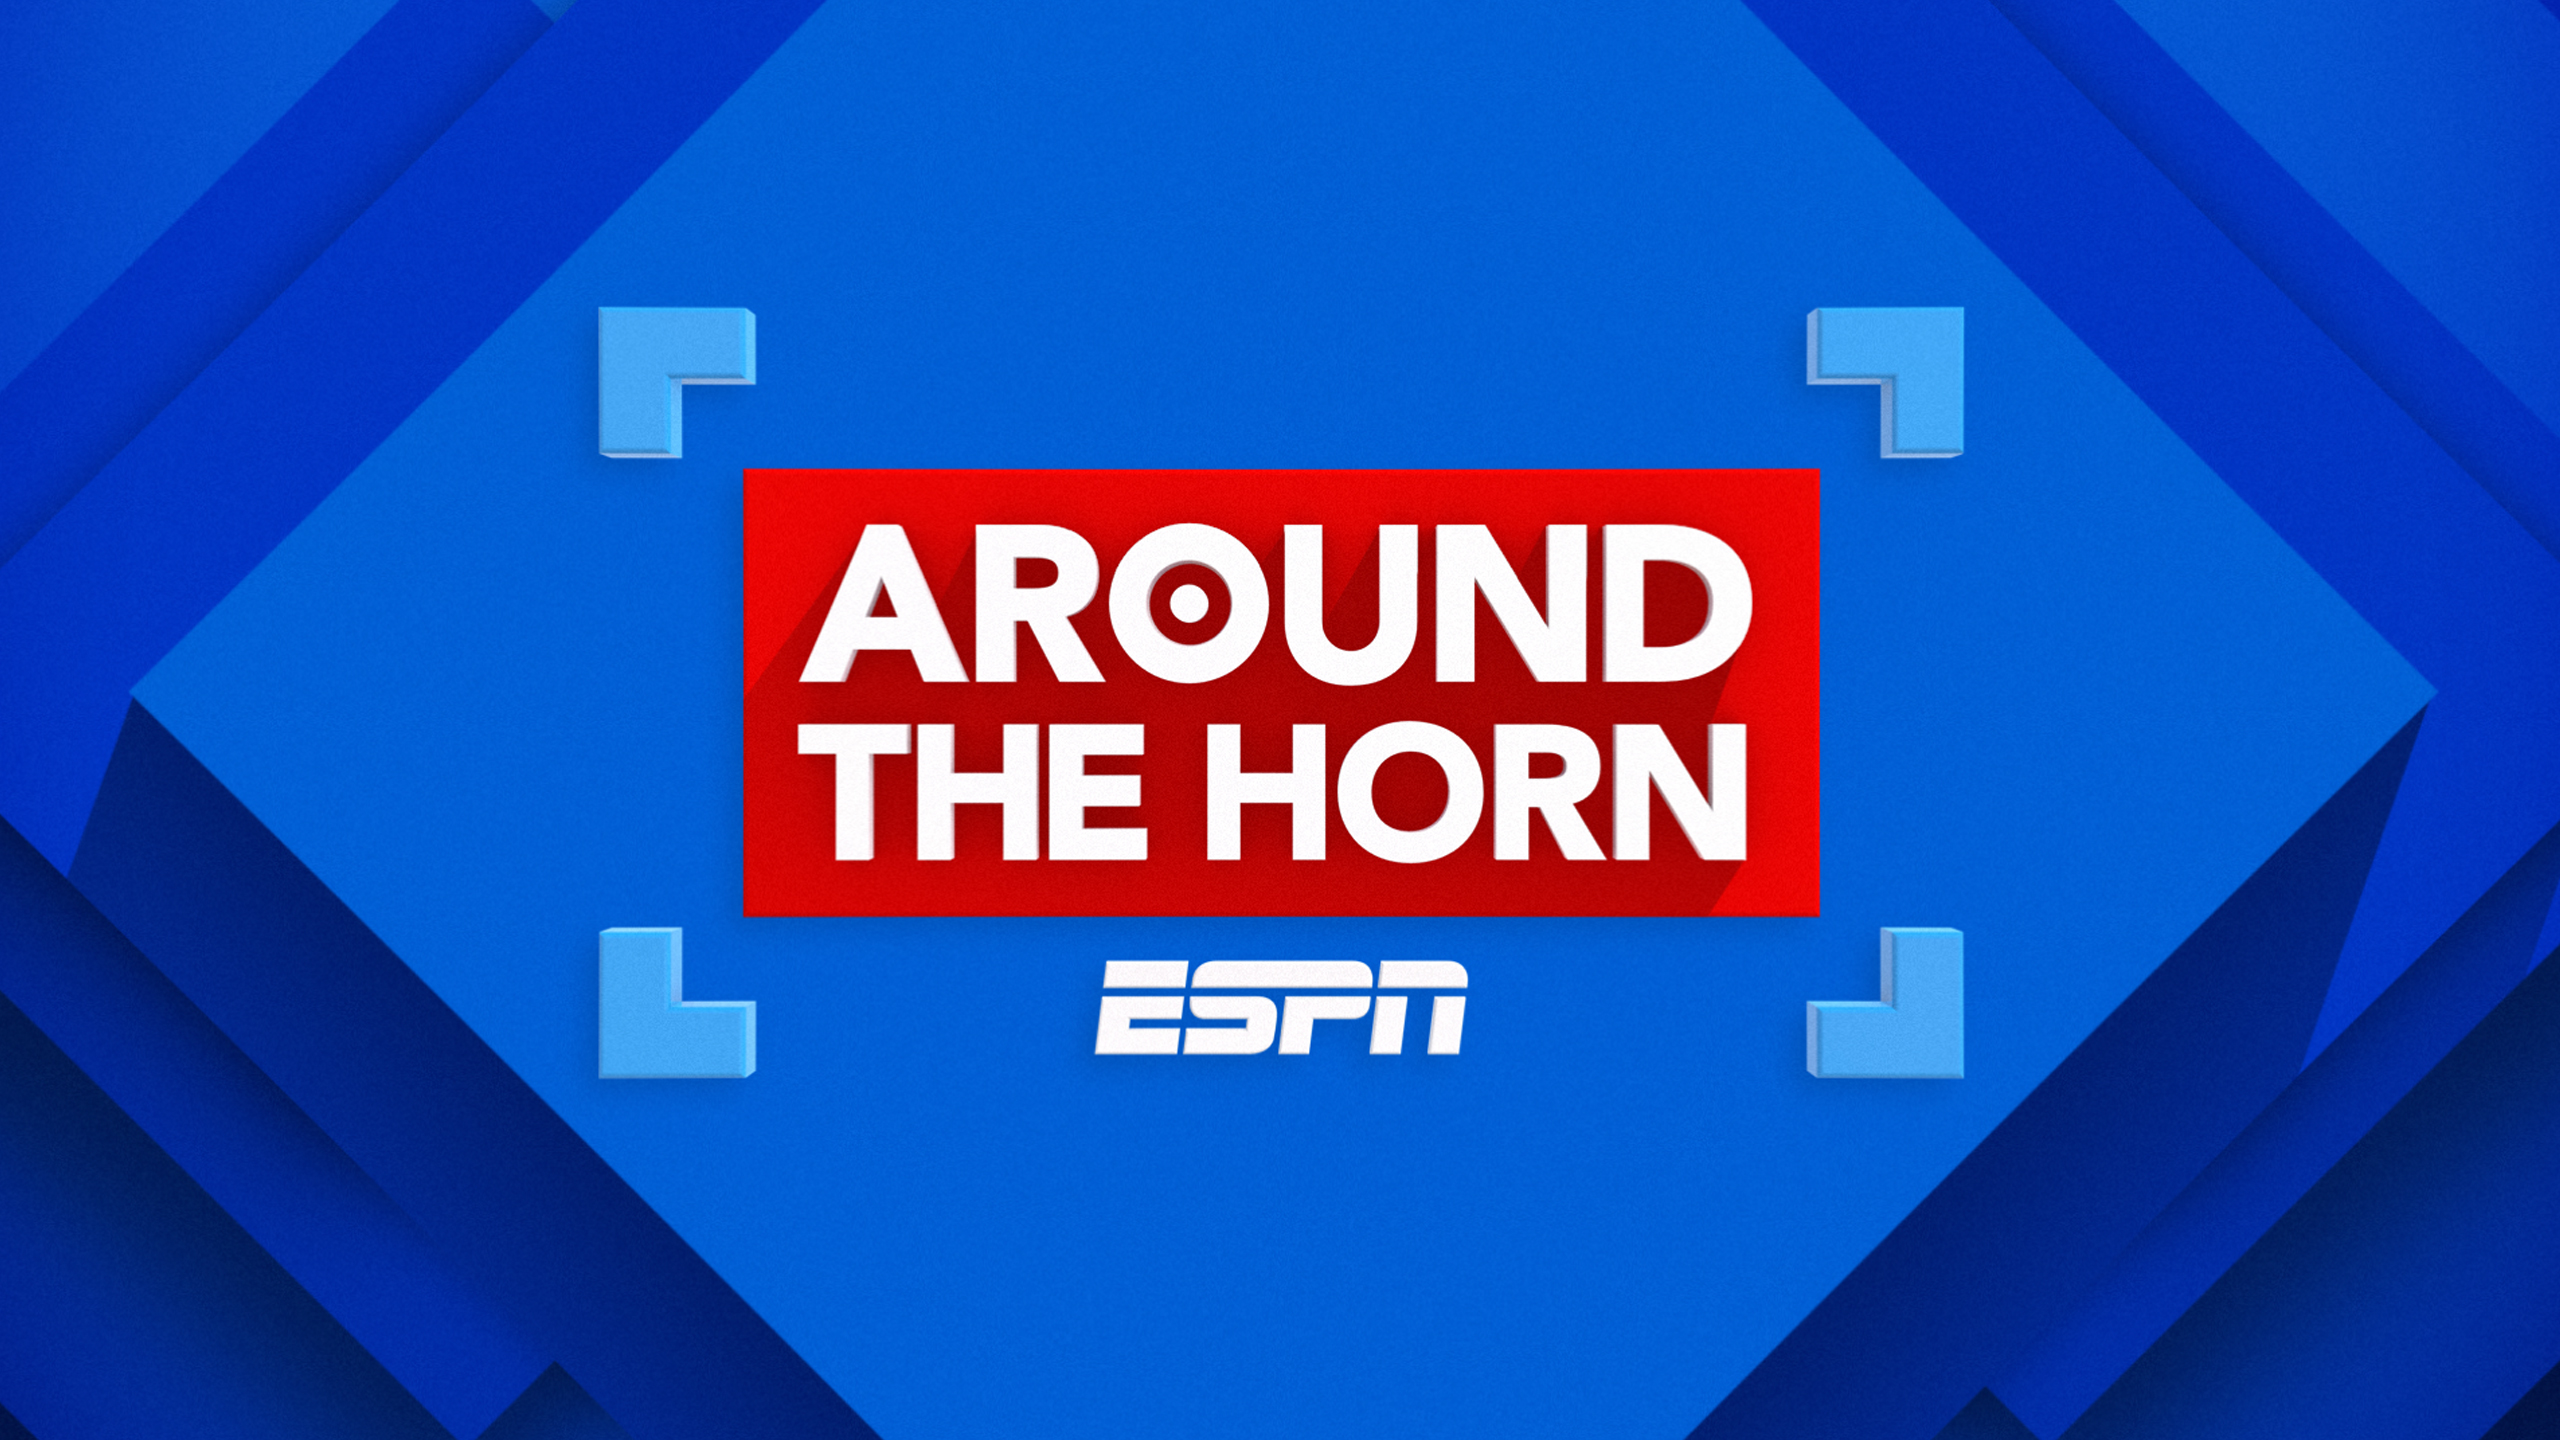 Fri, 4/19 - Around The Horn